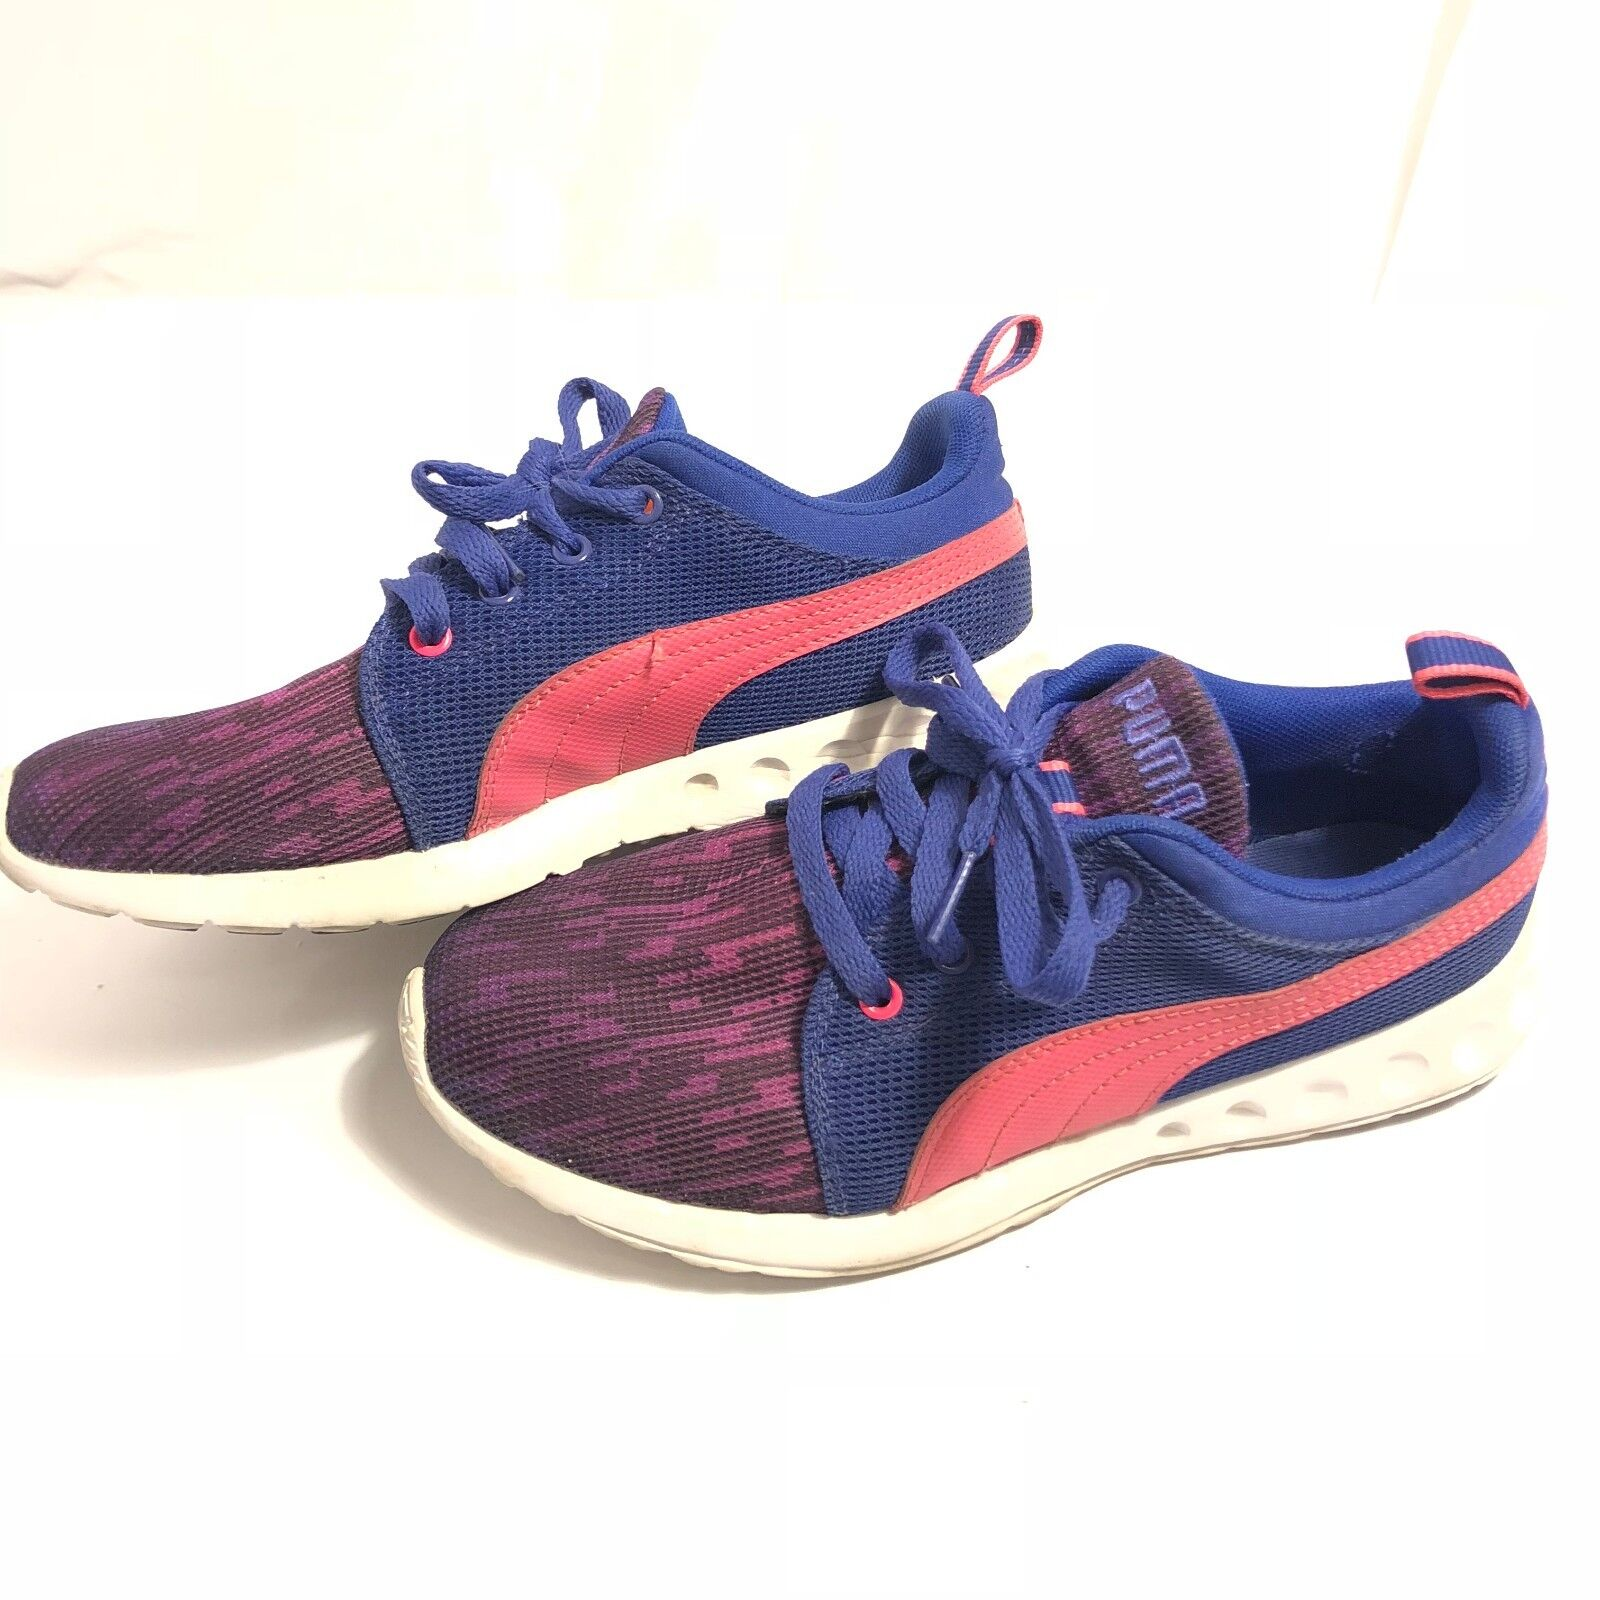 PUMA Womens Carson Runner Glitch 2 Fashion Sneaker Clematis bluee Pink Size 7.5